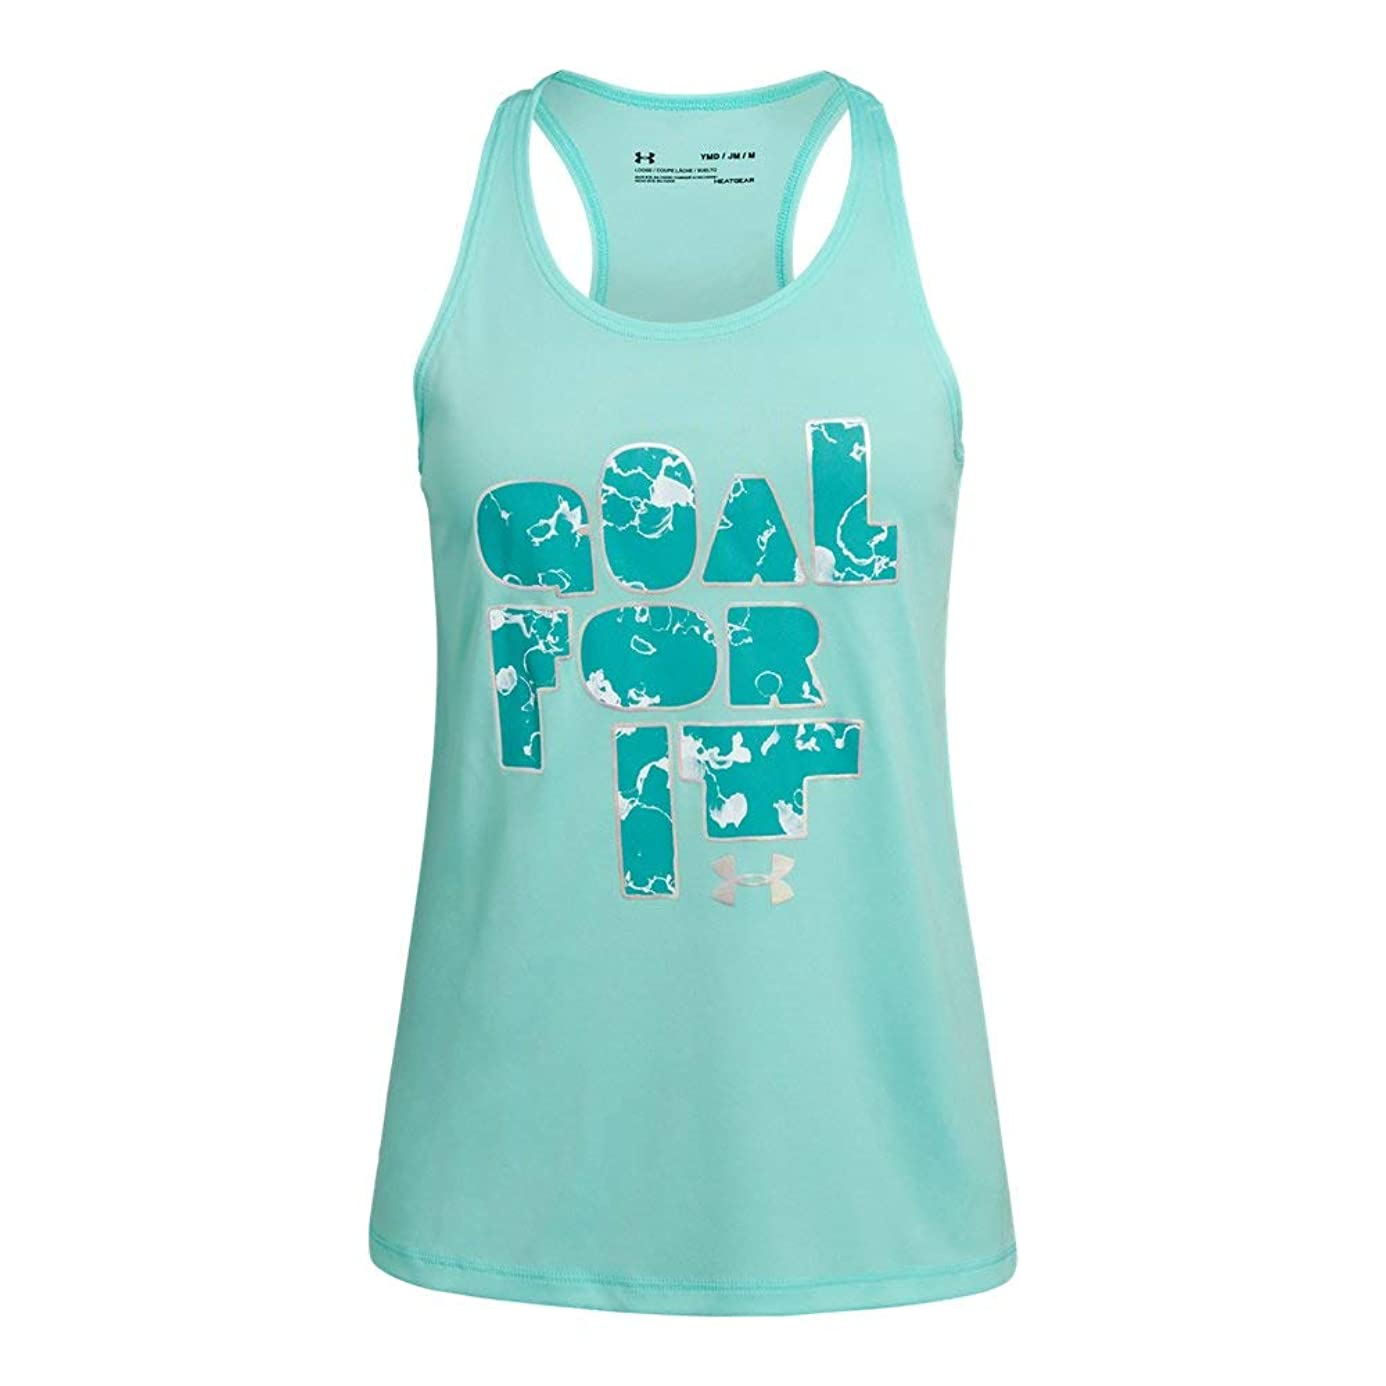 Under Armour Goal for IT Tank, Neo Turquoise//Azure Teal, Youth